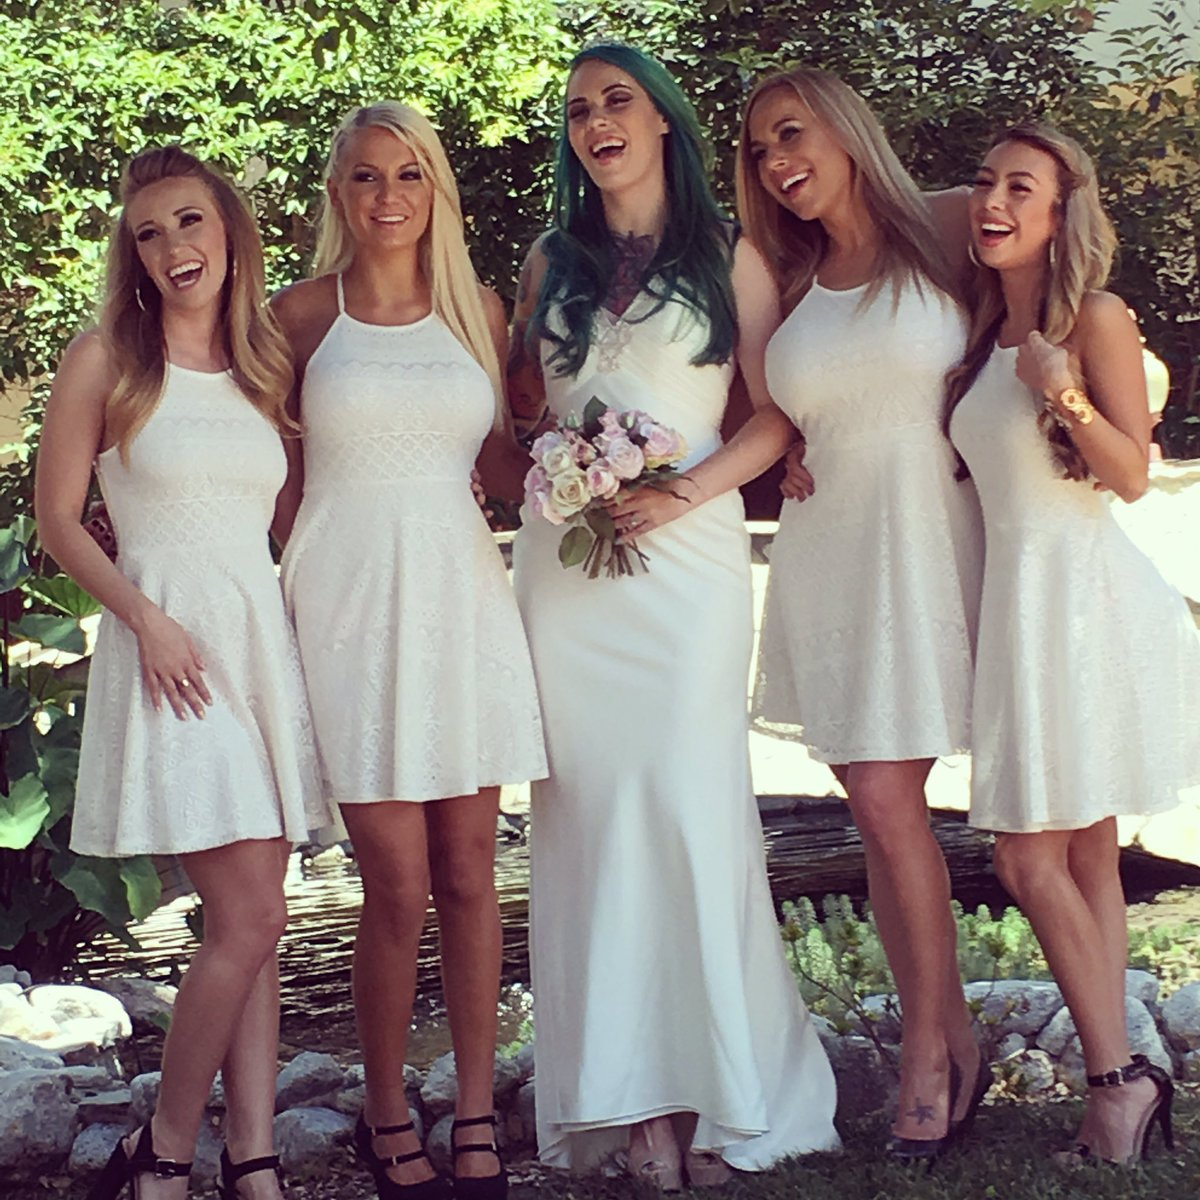 Bridal party orgy apologise, but